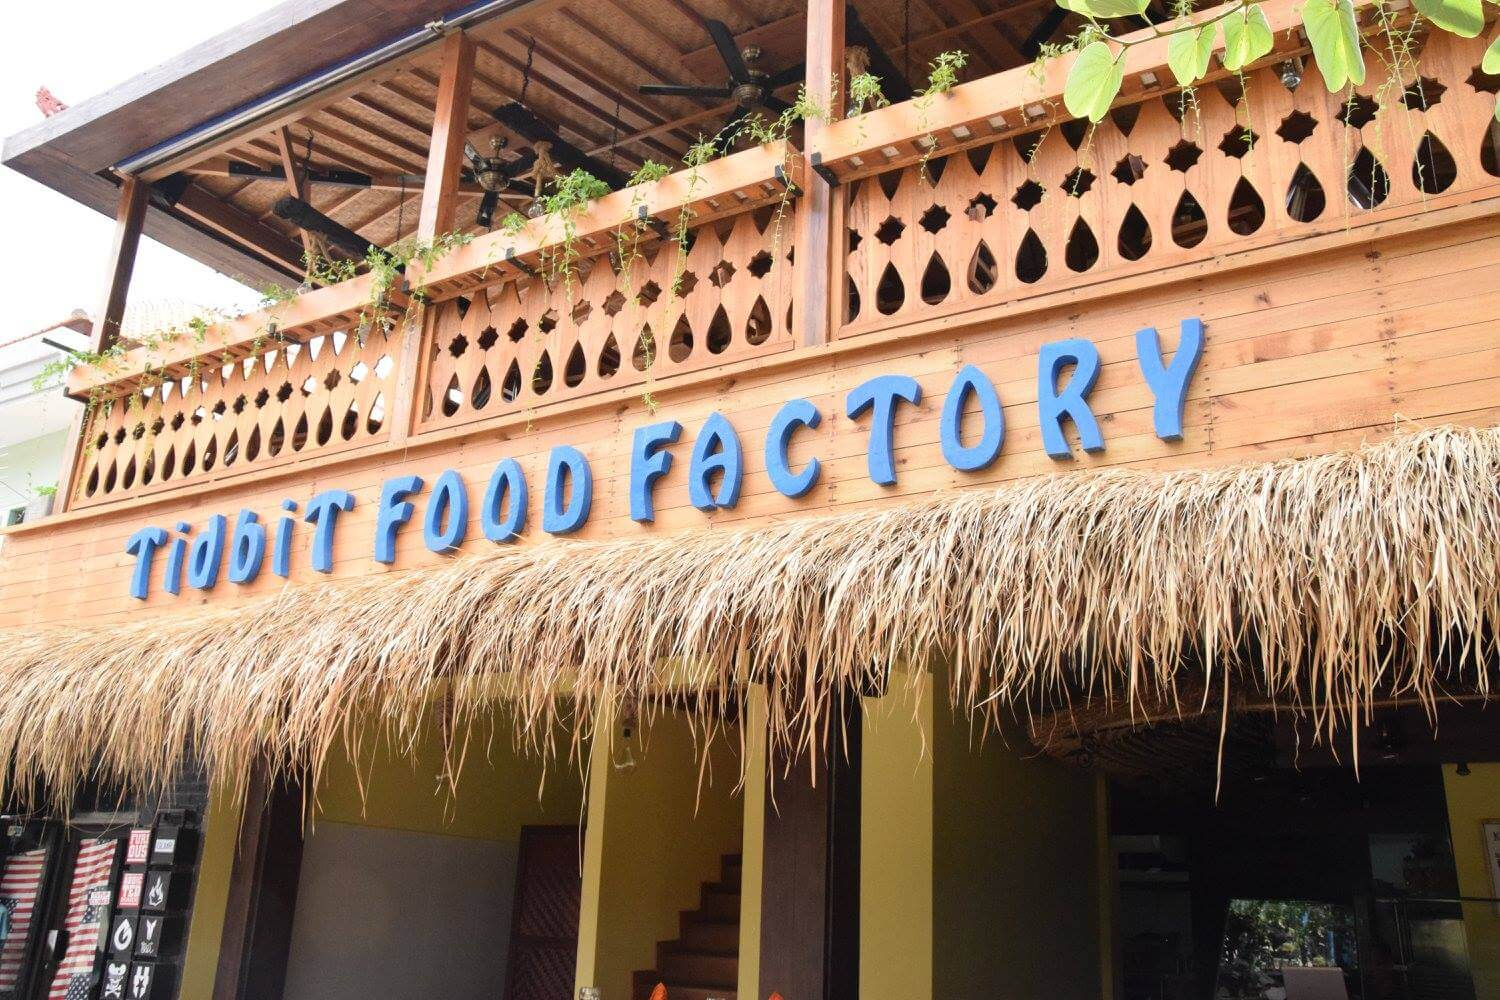 Tidbit Food Factory